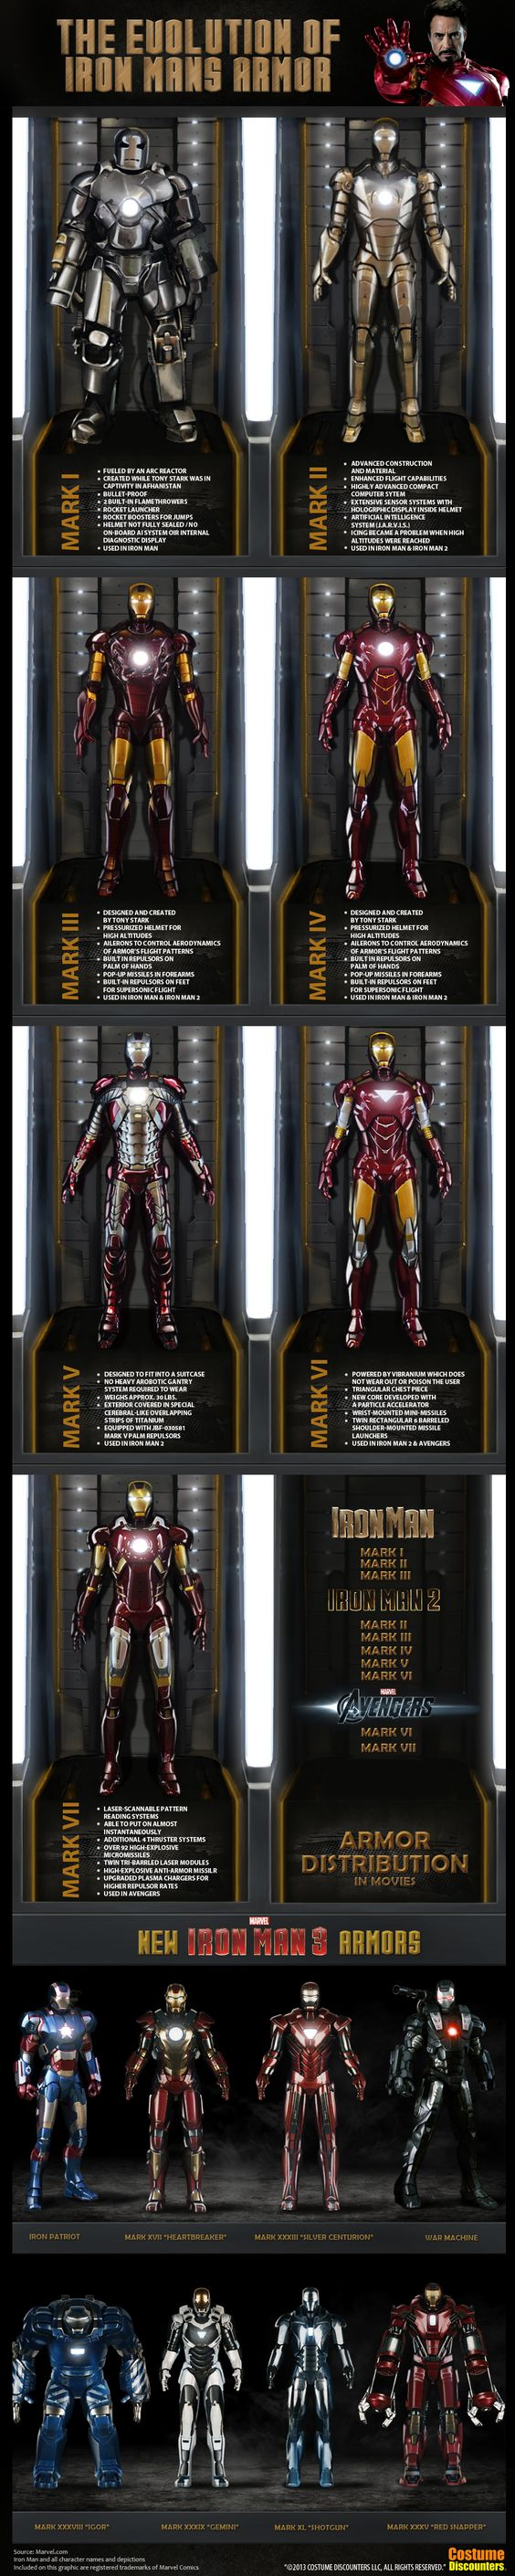 Iron Man Movie Suits